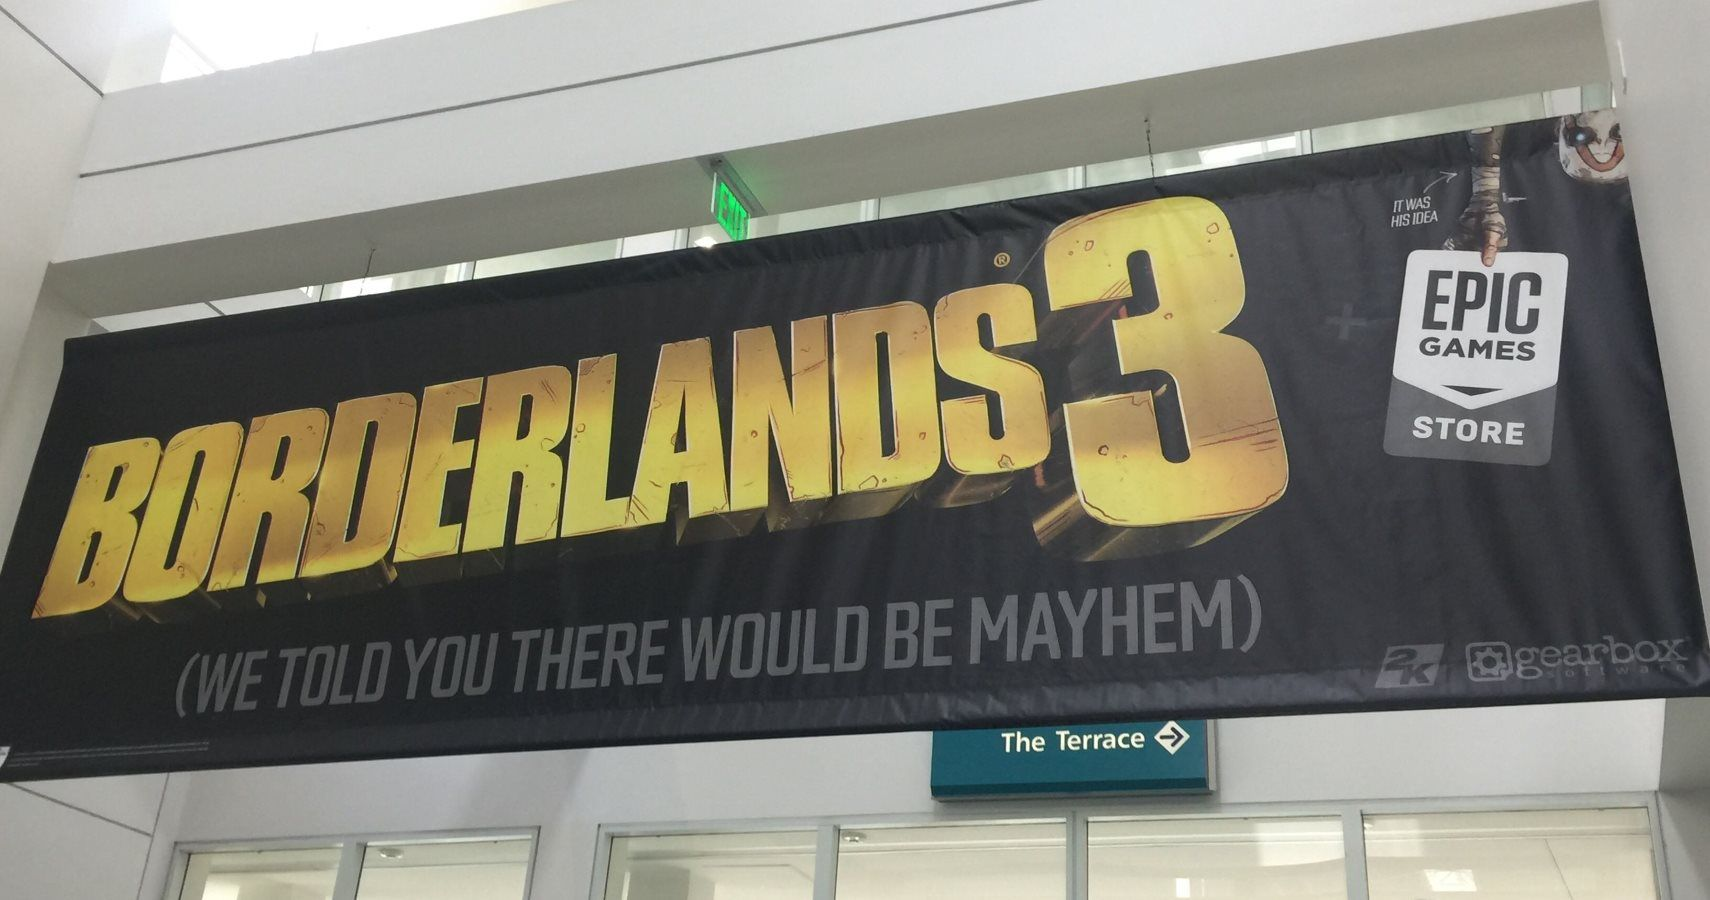 Borderlands 3 E3 Banner Jokes About Epic Game Store Exclusivity